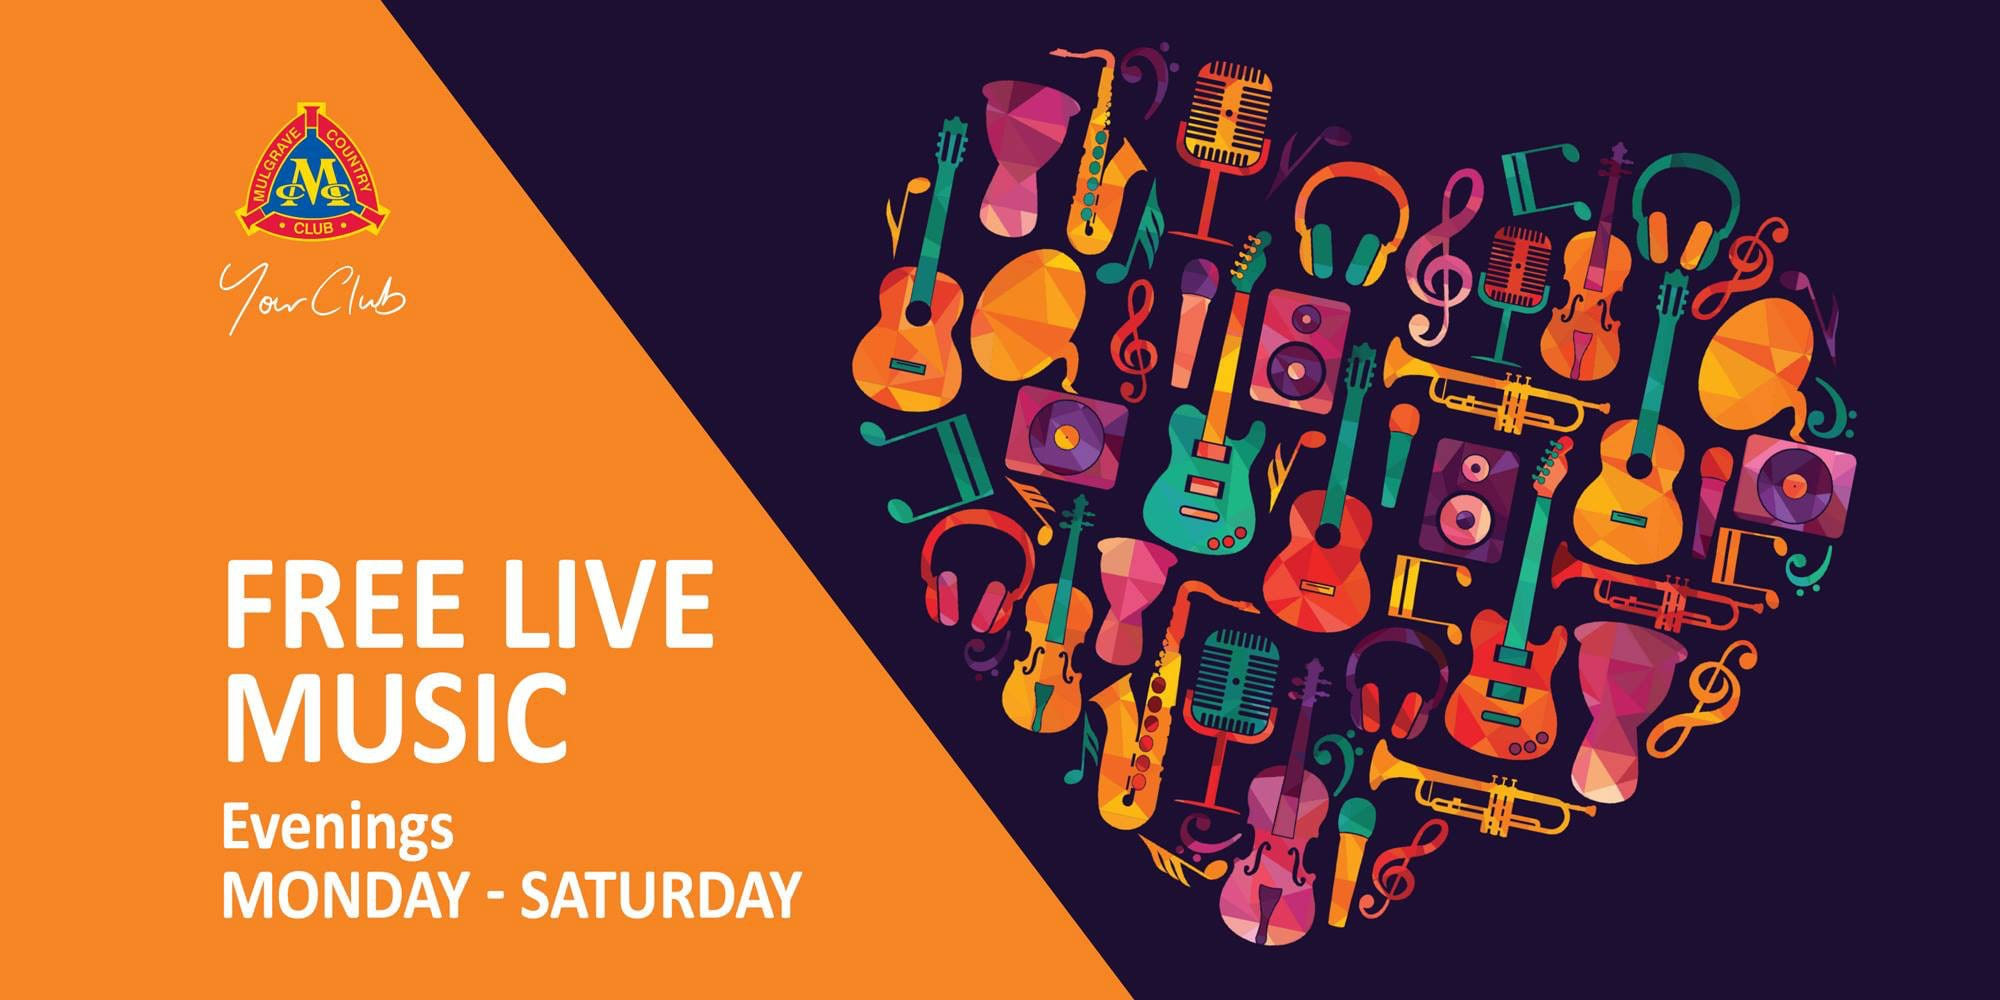 Free Live Music at Mulgrave Country Club